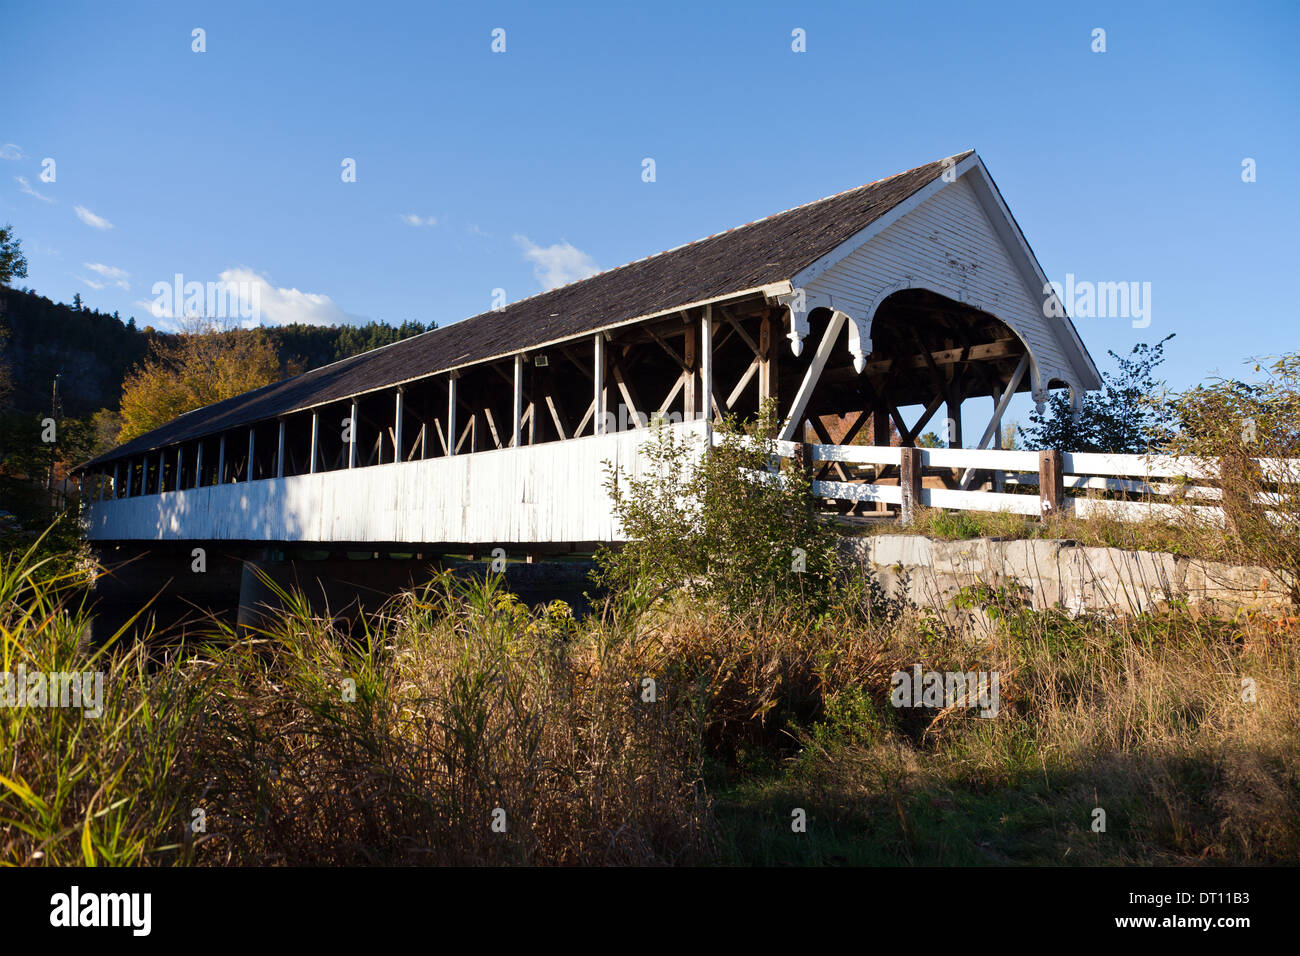 Popular with artists, the Stark covered bridge dates from 1862 and crosses the Ammonoosuc River, Stark, New Hampshire. - Stock Image